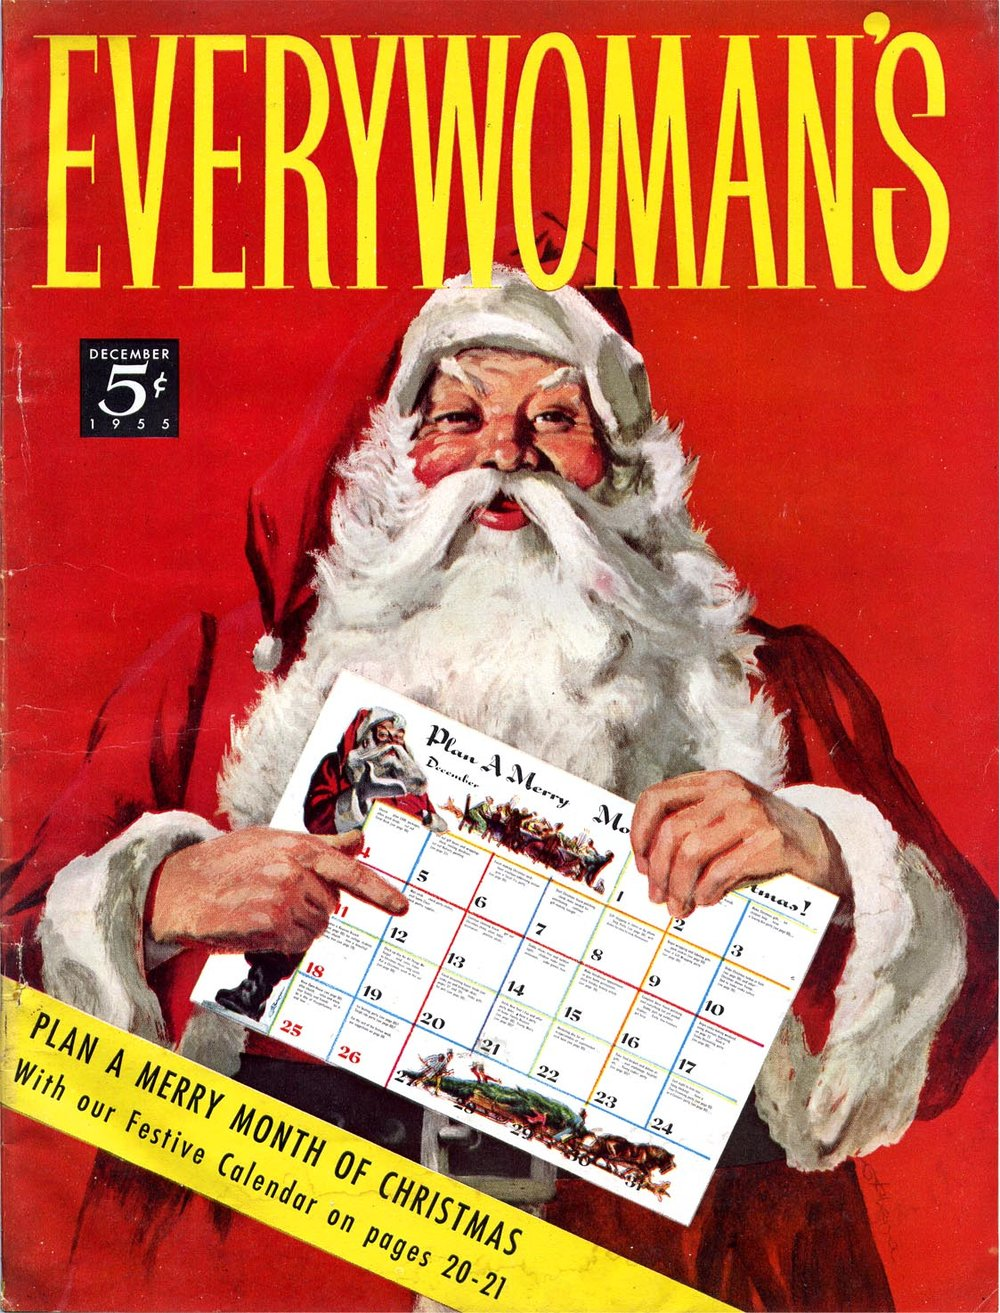 December 1955 - Plan a Merry Month of Christmas